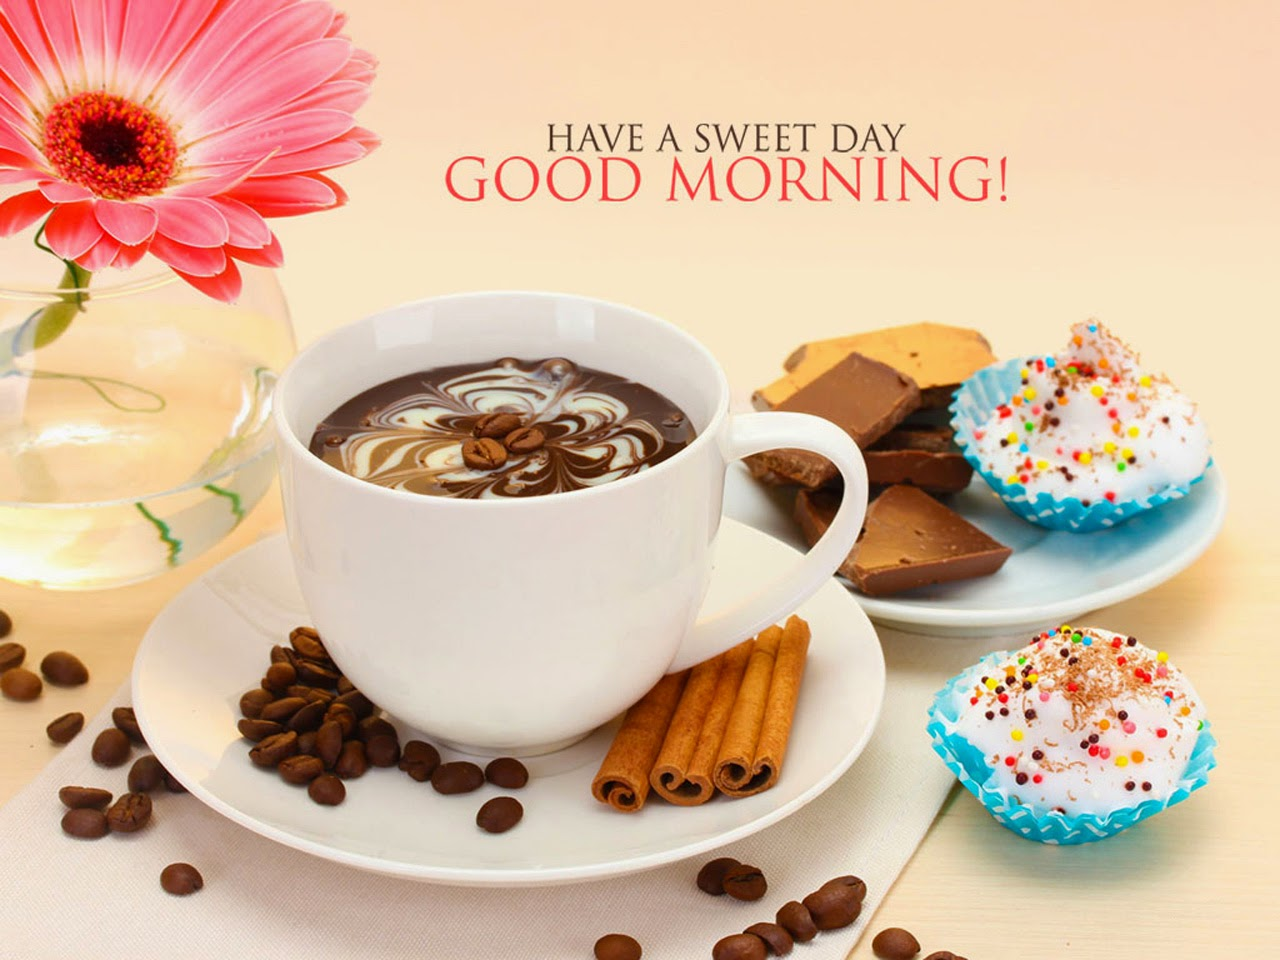 Good morning sms and messages with coffee flower wallpapers poetry good morning sms and messages with coffee flower wallpapers kristyandbryce Choice Image